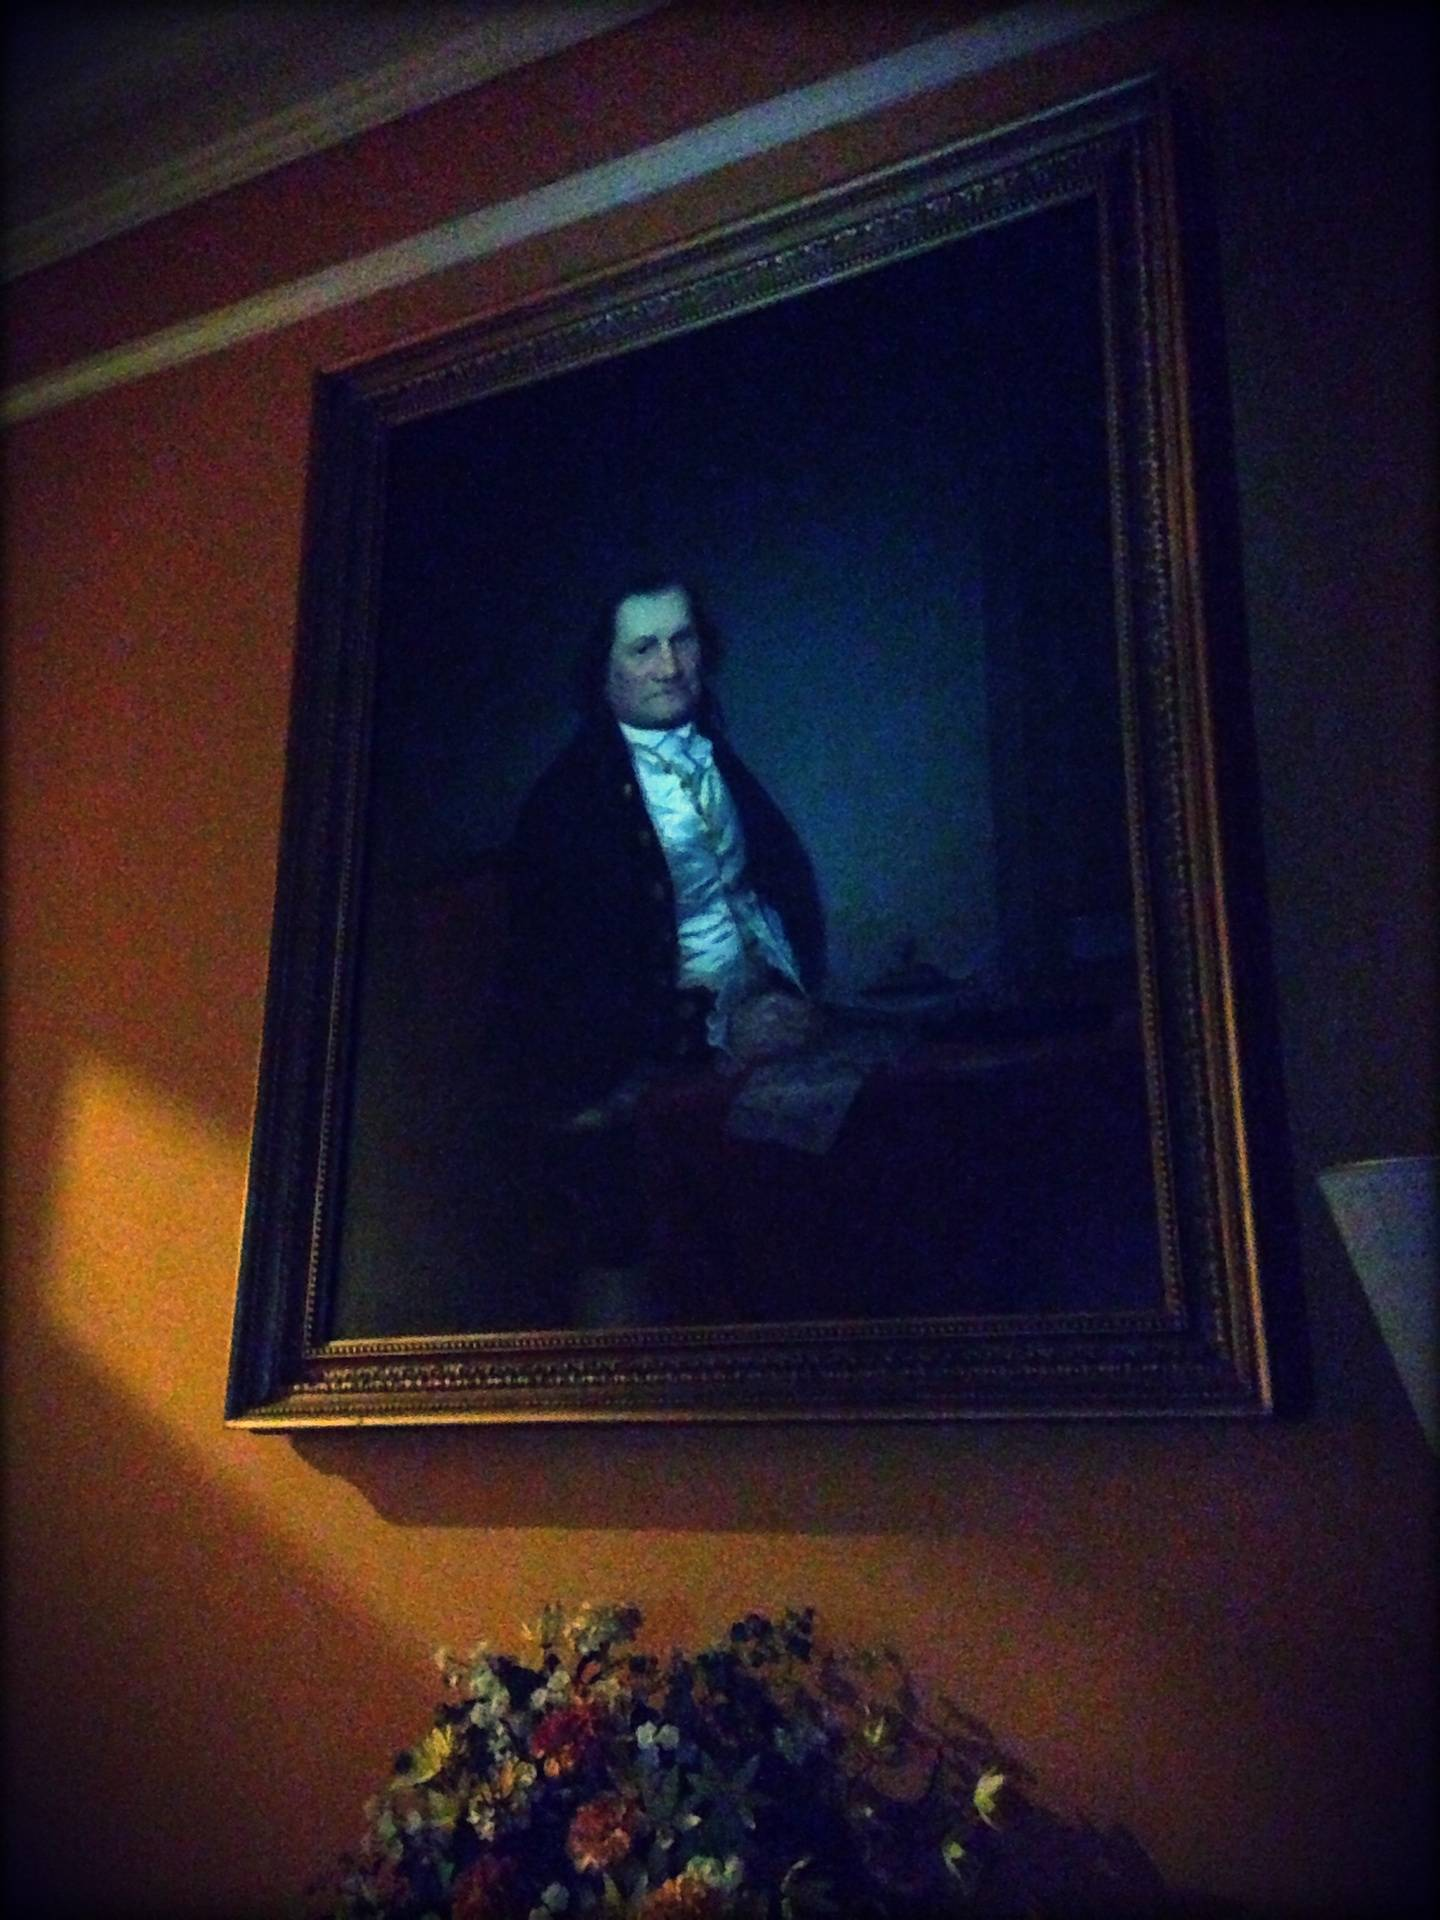 The man of the house: Abraham Ten Broeck